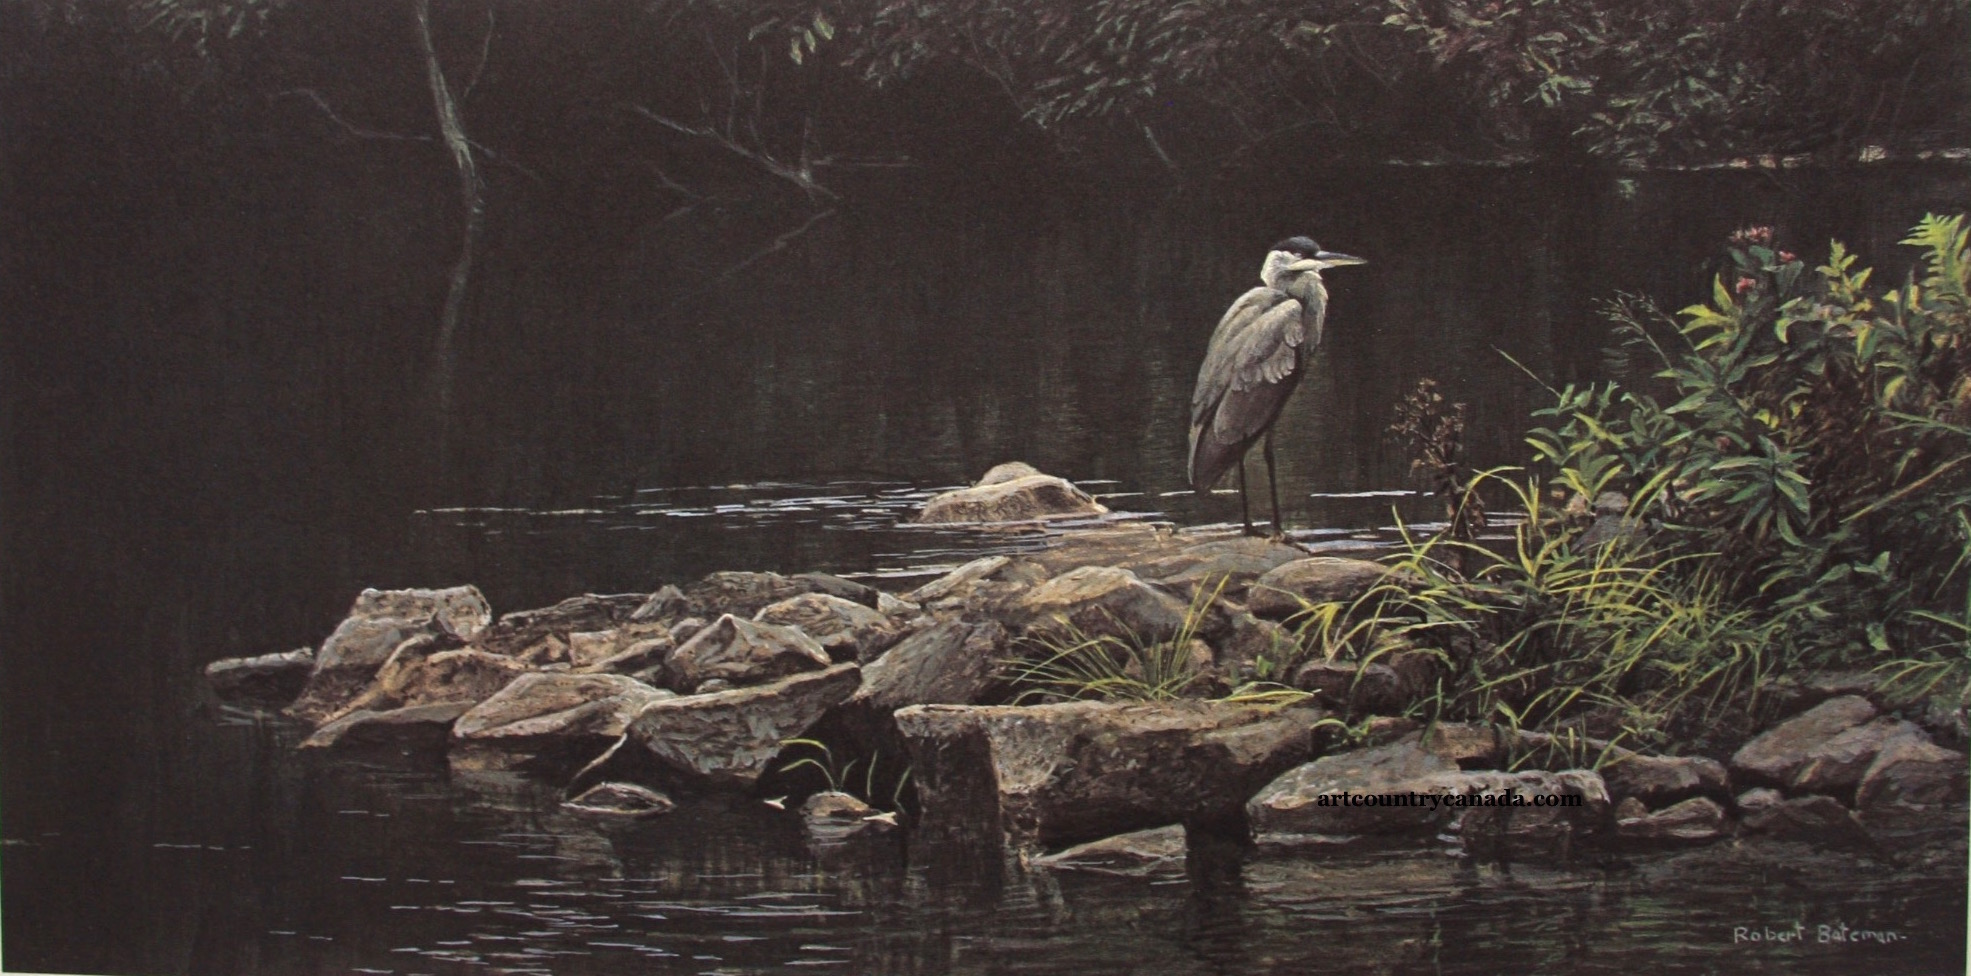 Robert bateman Heron On The Rocks